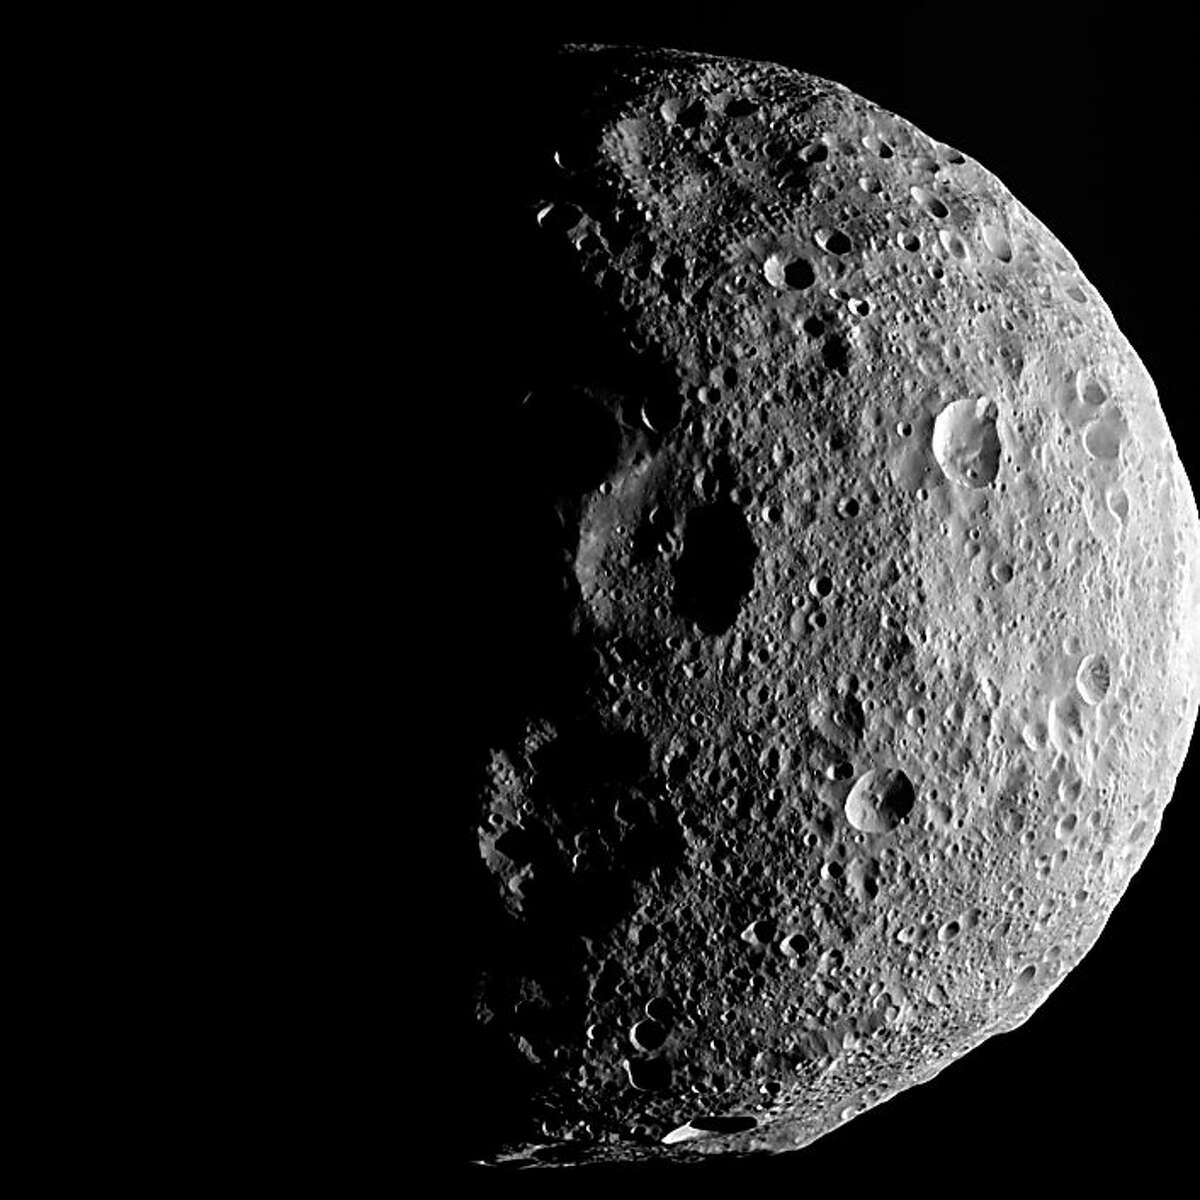 """This NASA image released September 5, 2012 shows the shadowy outlines of the terrain in Vesta's northern region in this image from NASA's Dawn spacecraft. The image comes from the last sequence of images Dawn obtained of the giant asteroid Vesta as it departed the giant asteroid. The view looks down at Vesta's north pole, which is in the middle of the image. When Dawn arrived in July 2011, Vesta's north pole was in darkness. After more than a year at Vesta, the sunlight has now made it to Vesta's north pole. AFP PHOTO/NASA / NASA/JPL-Caltech/UCLA/MPS/DLR/IDA = RESTRICTED TO EDITORIAL USE - MANDATORY CREDIT """" AFP PHOTO / NASA/JPL-Caltech/UCLA/MPS/DLR/IDA """" - NO MARKETING NO ADVERTISING CAMPAIGNS - DISTRIBUTED AS A SERVICE TO CLIENTS =HO/AFP/GettyImages"""